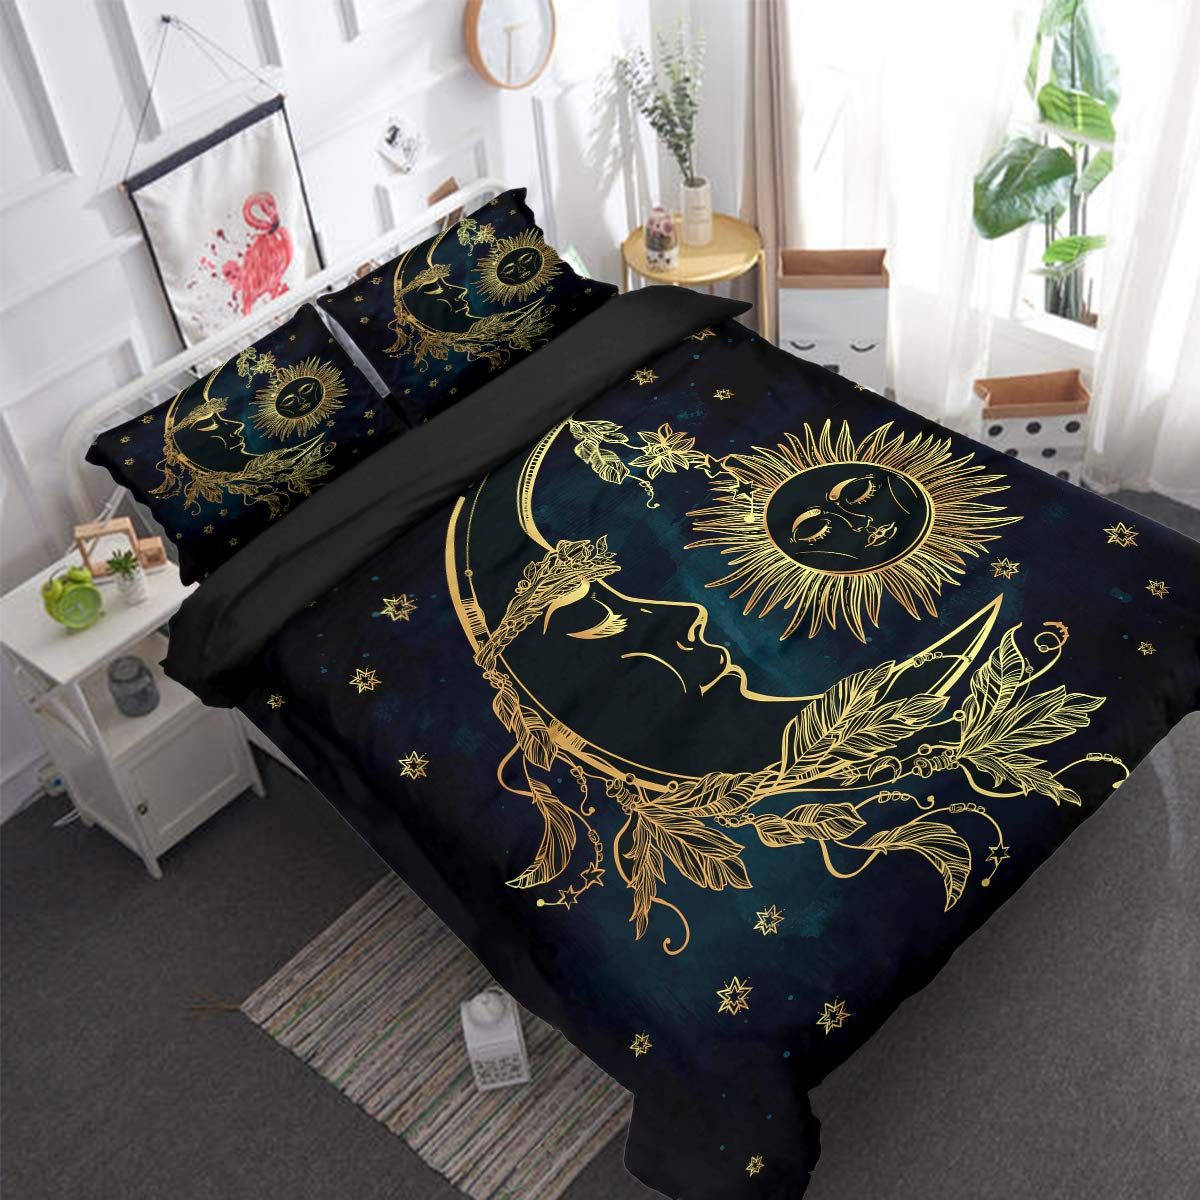 WONGS BEDDING Golden Mandala Duvet Cover 3D Printed Bohemian Floral Duvet Cover with Zipper Closure and 2 Pillowcases for Adults Teens and Girls King Size Navy Blue, 3 Pieces